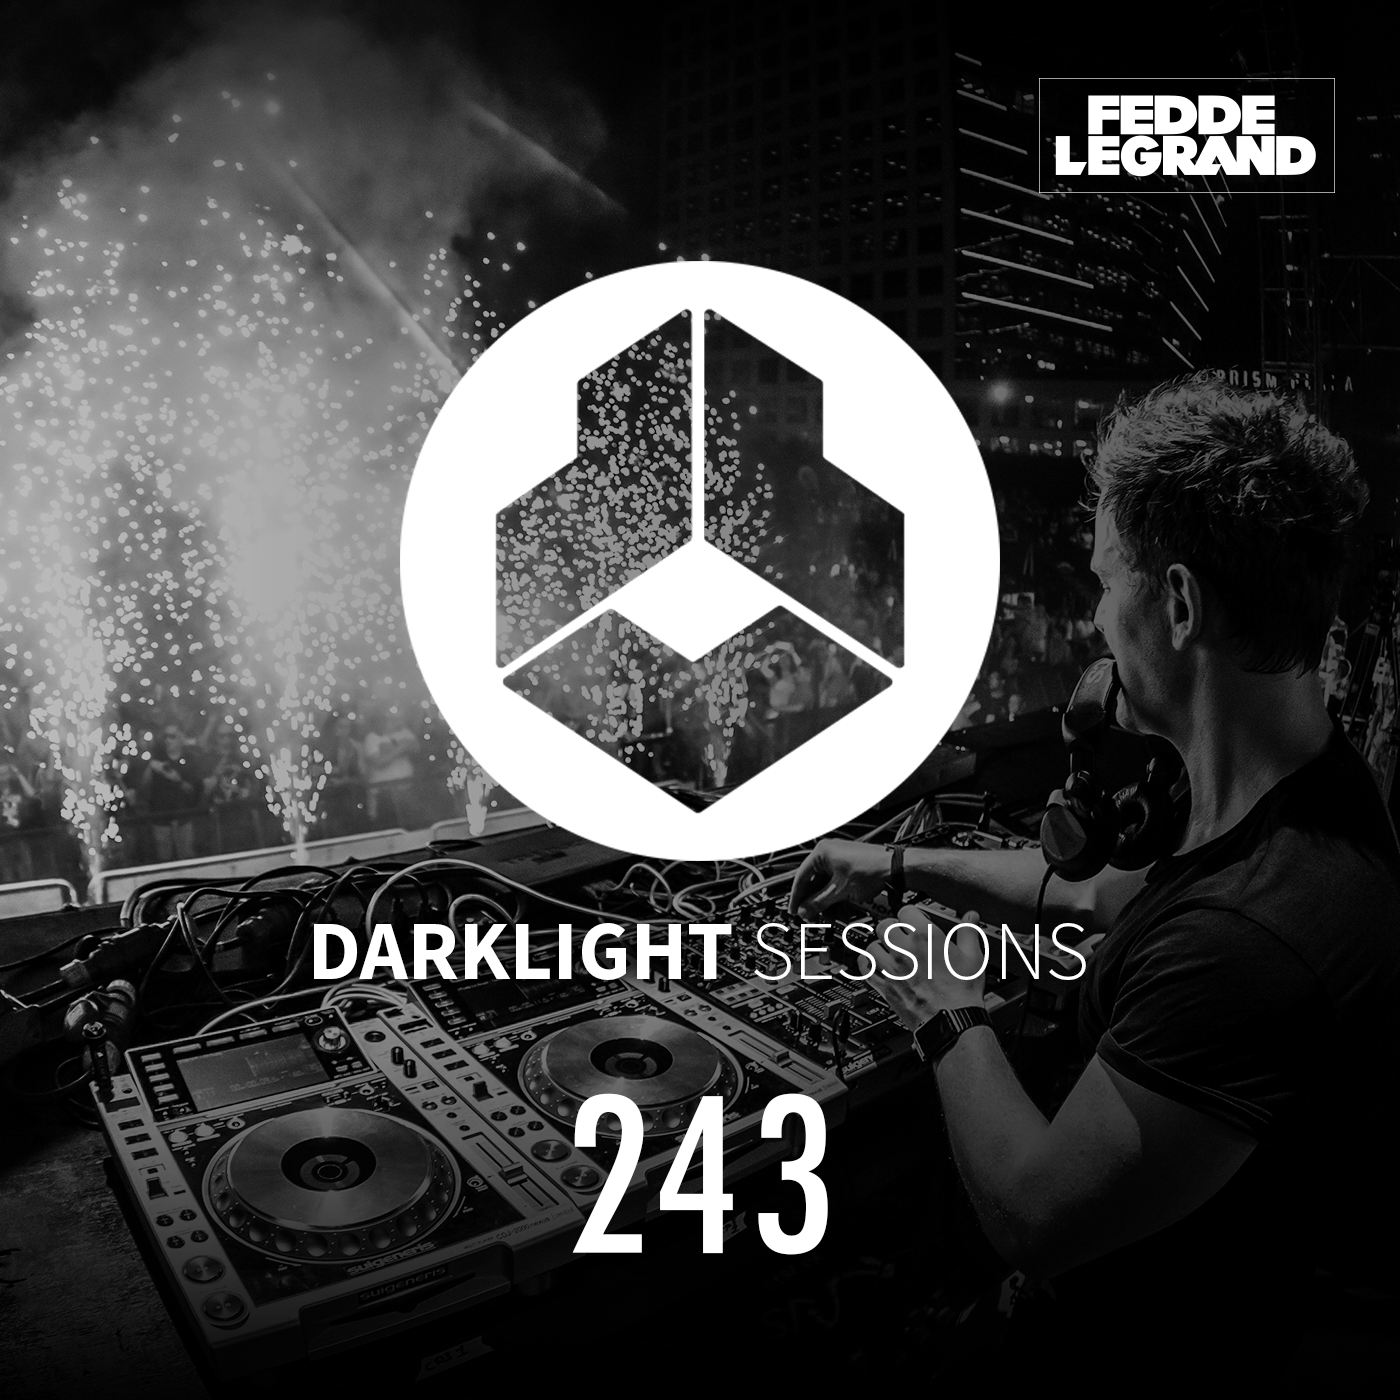 Darklight Sessions 243